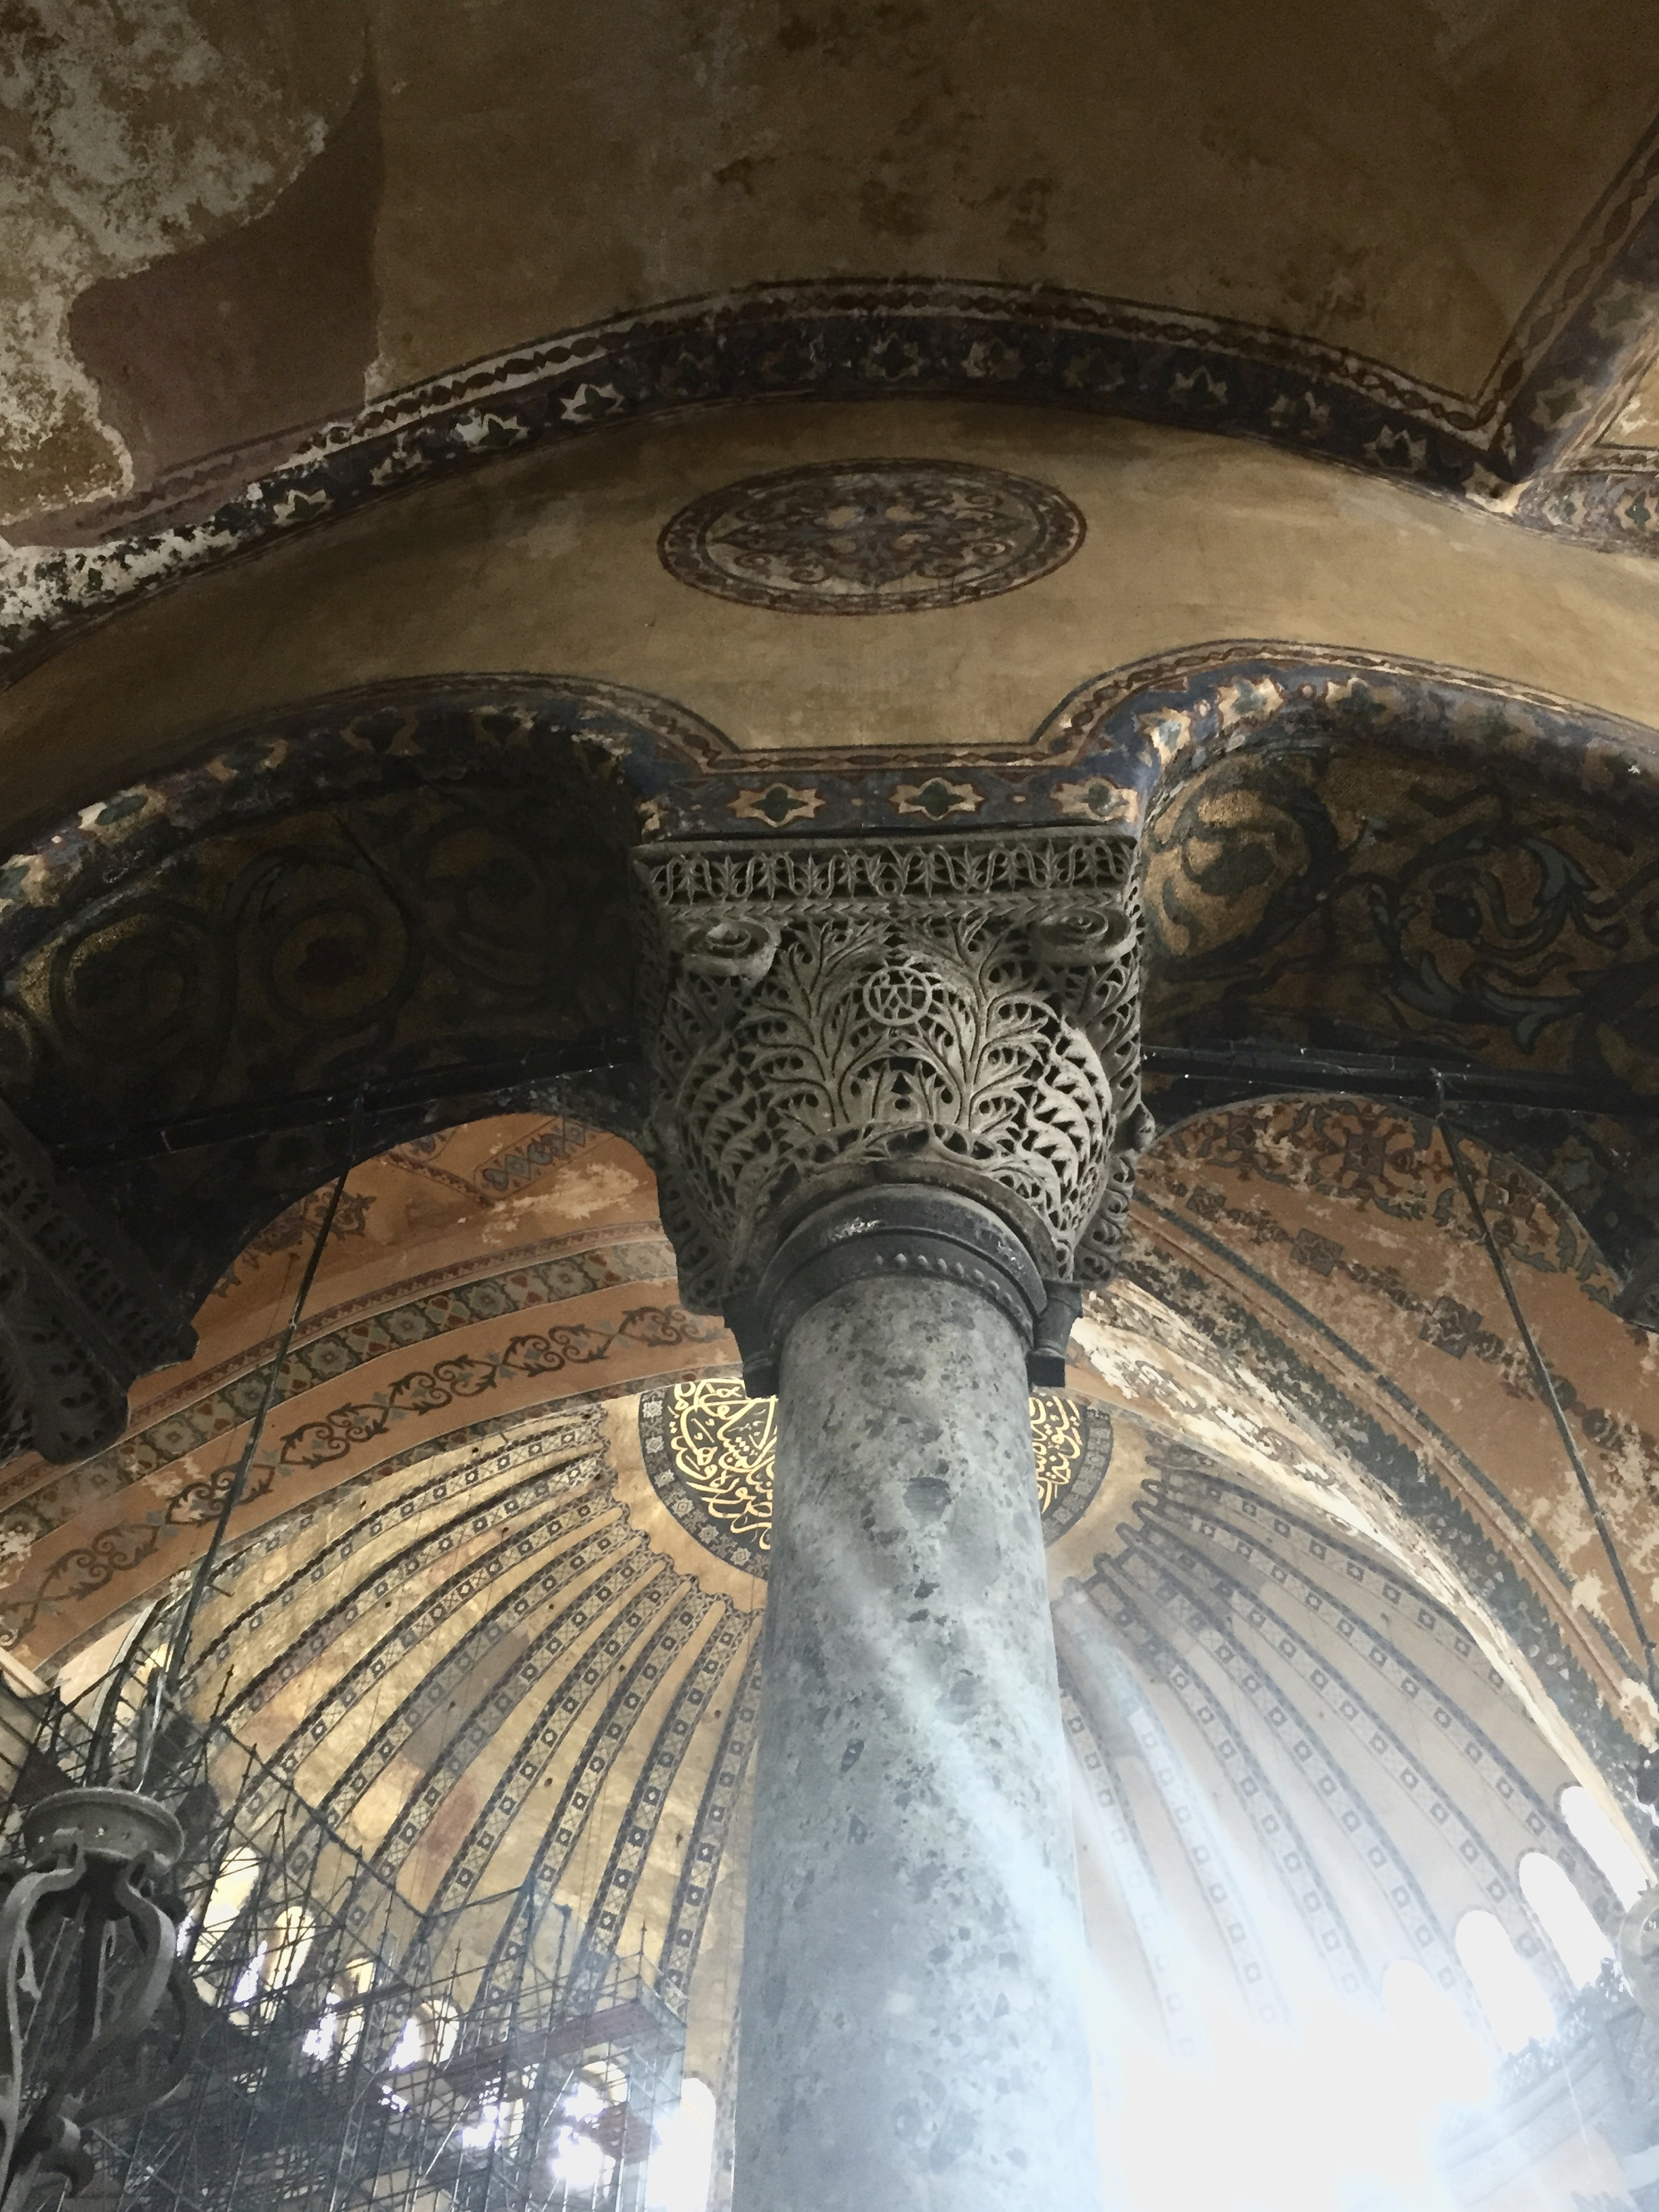 Image of Hagia Sophia, Stop 2 on our Istanbul itinerary